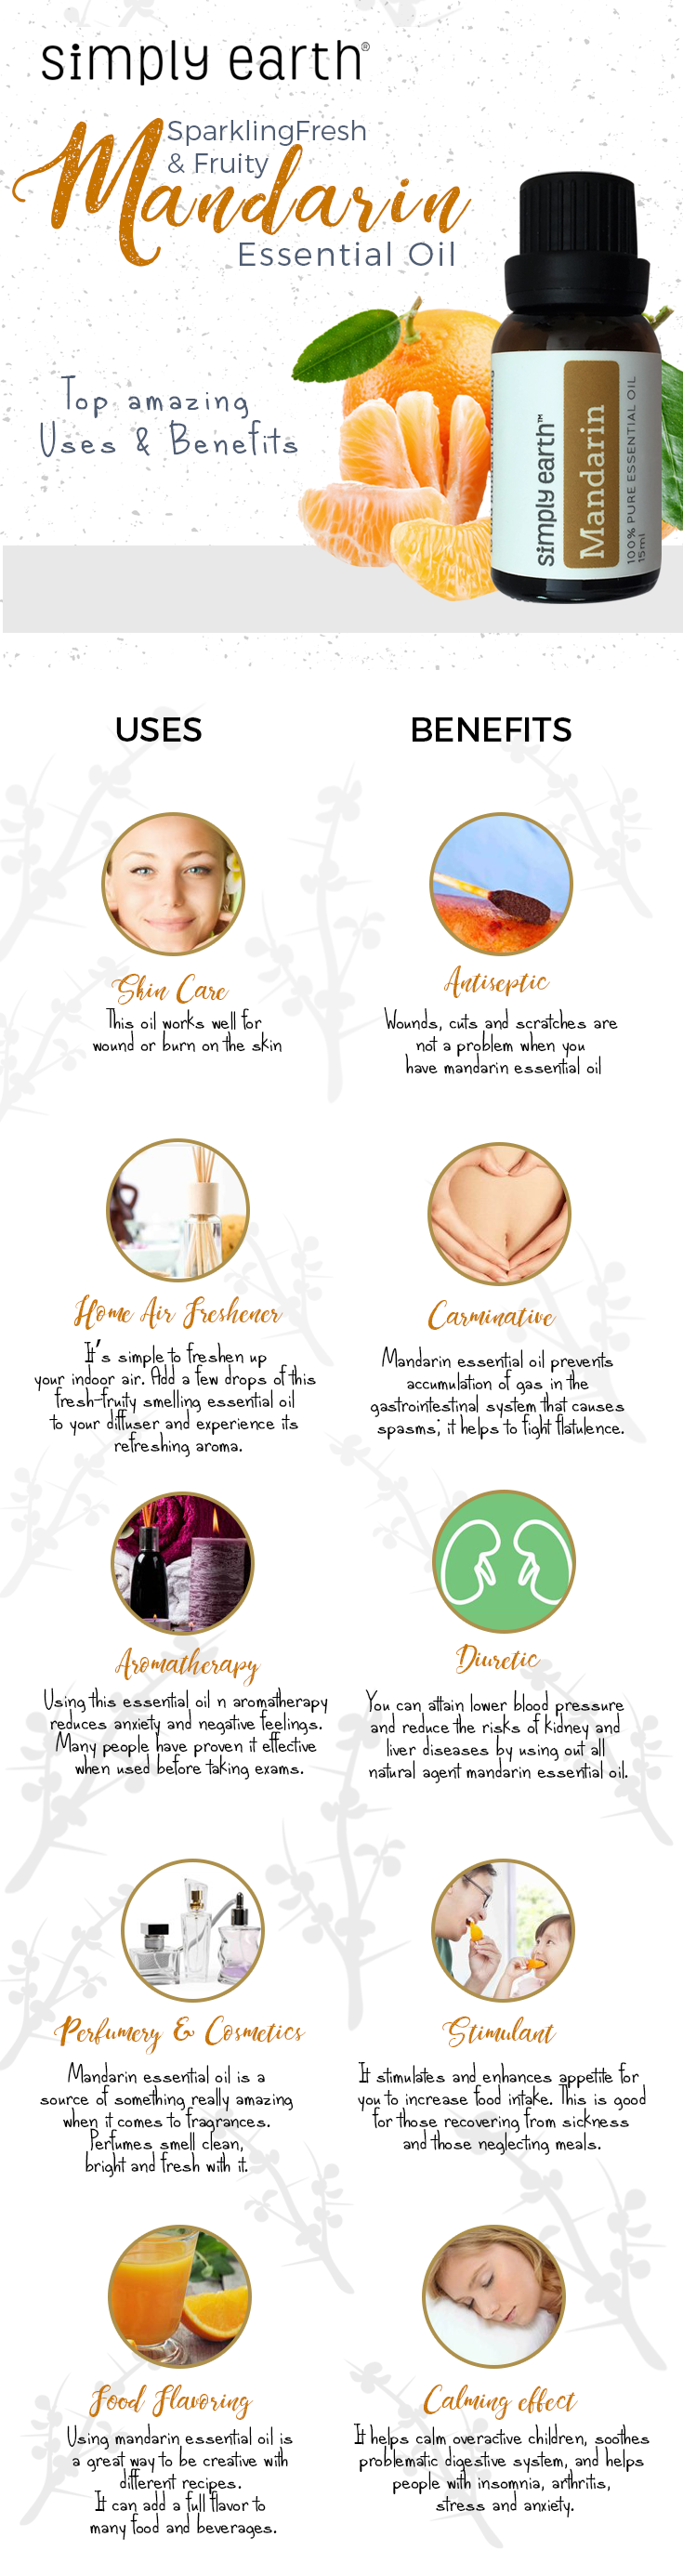 mandarin essential oil uses and benefits